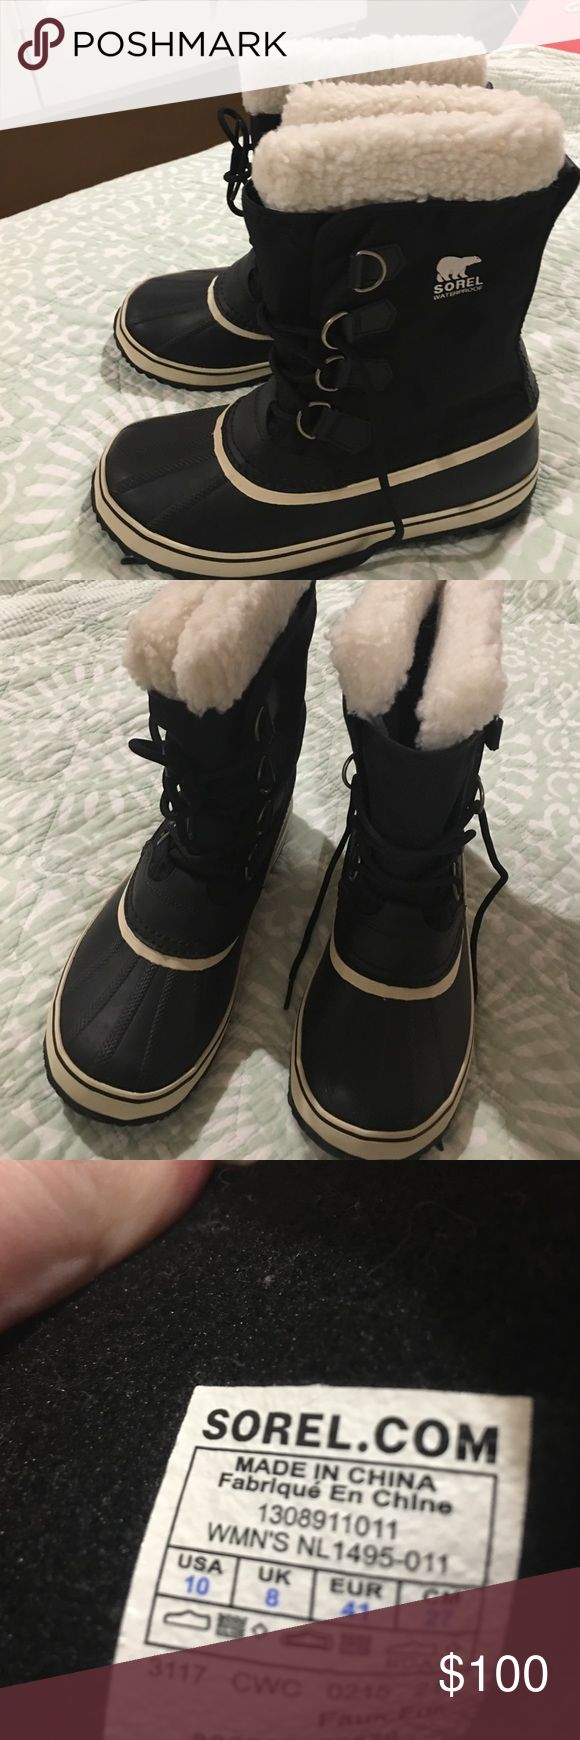 Sorel snow boots black size 10 Worn once. Practically new. Sorel Shoes Winter & Rain Boots